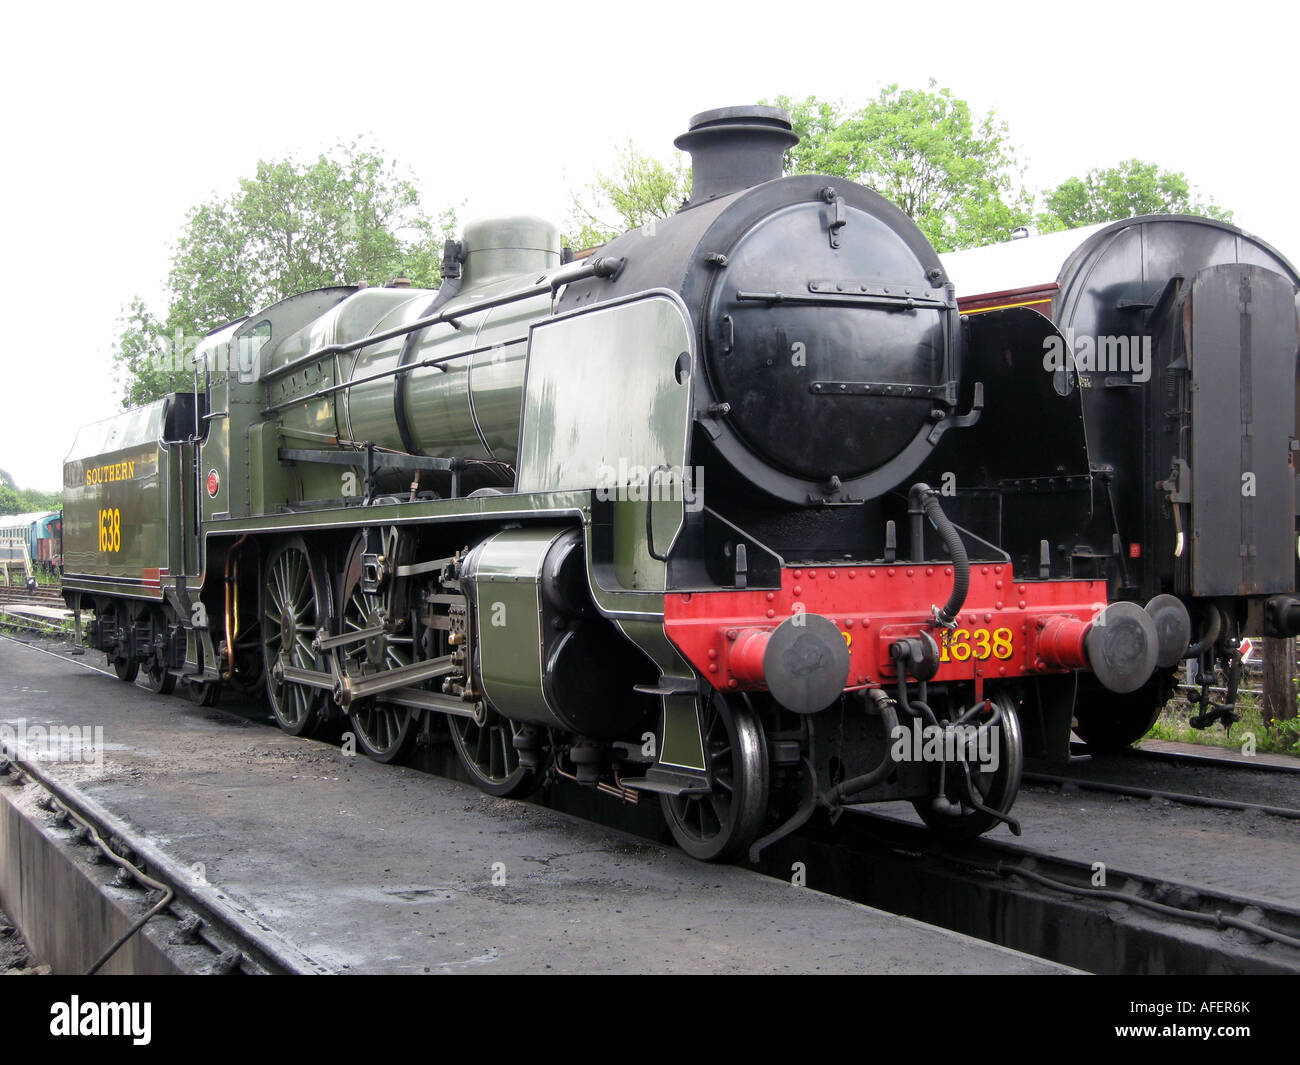 Southern Railway U-Class Steam Locomotive UK - Stock Image